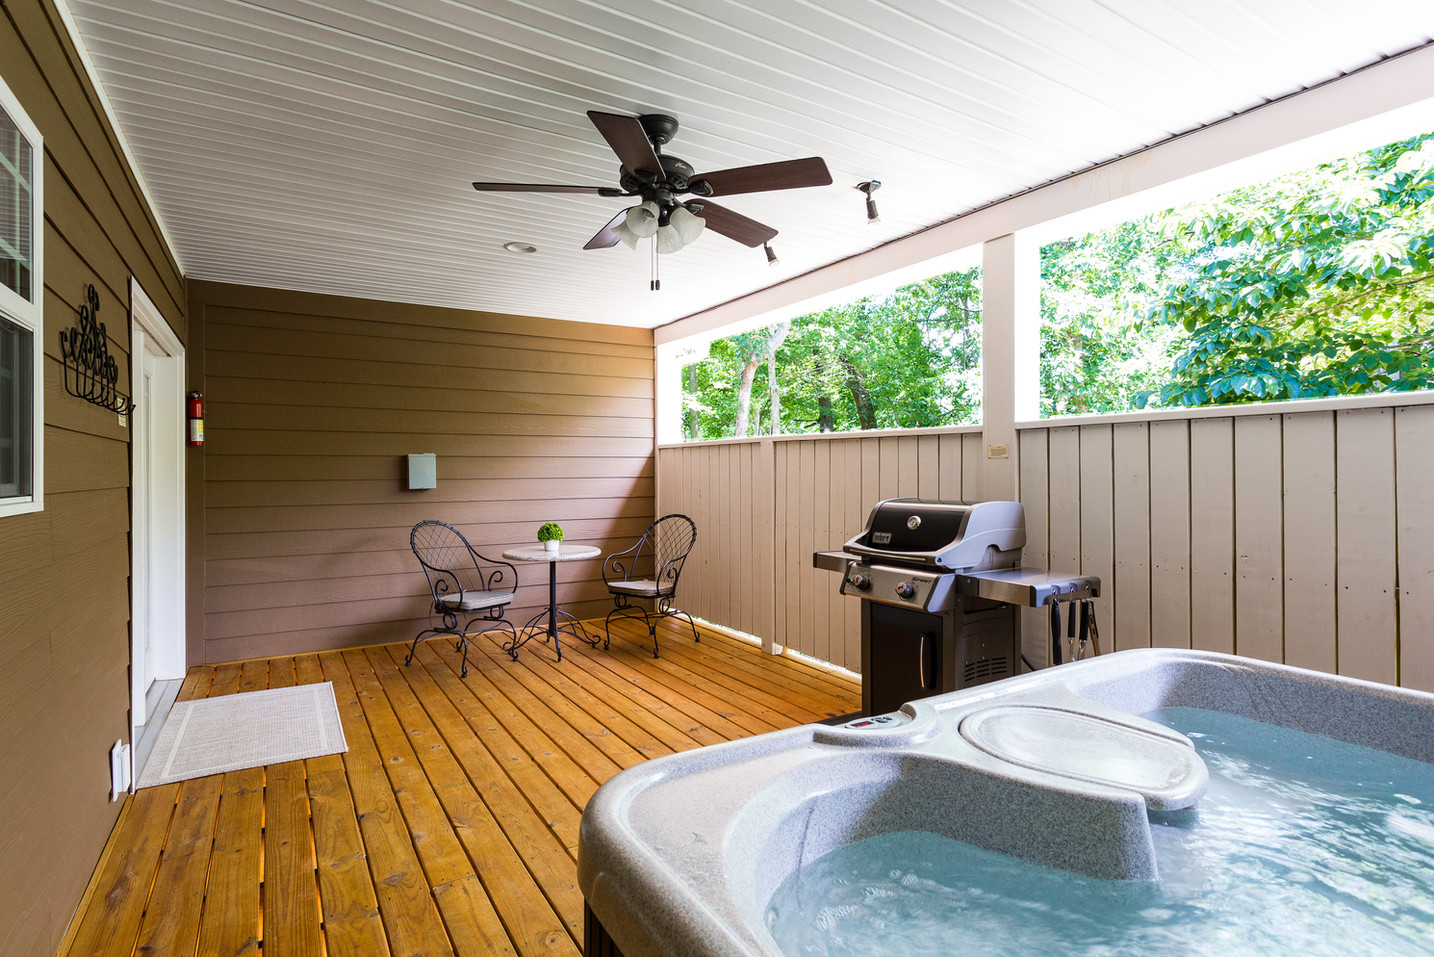 Romantic table and chairs, gas grill and crystal clear hot tub